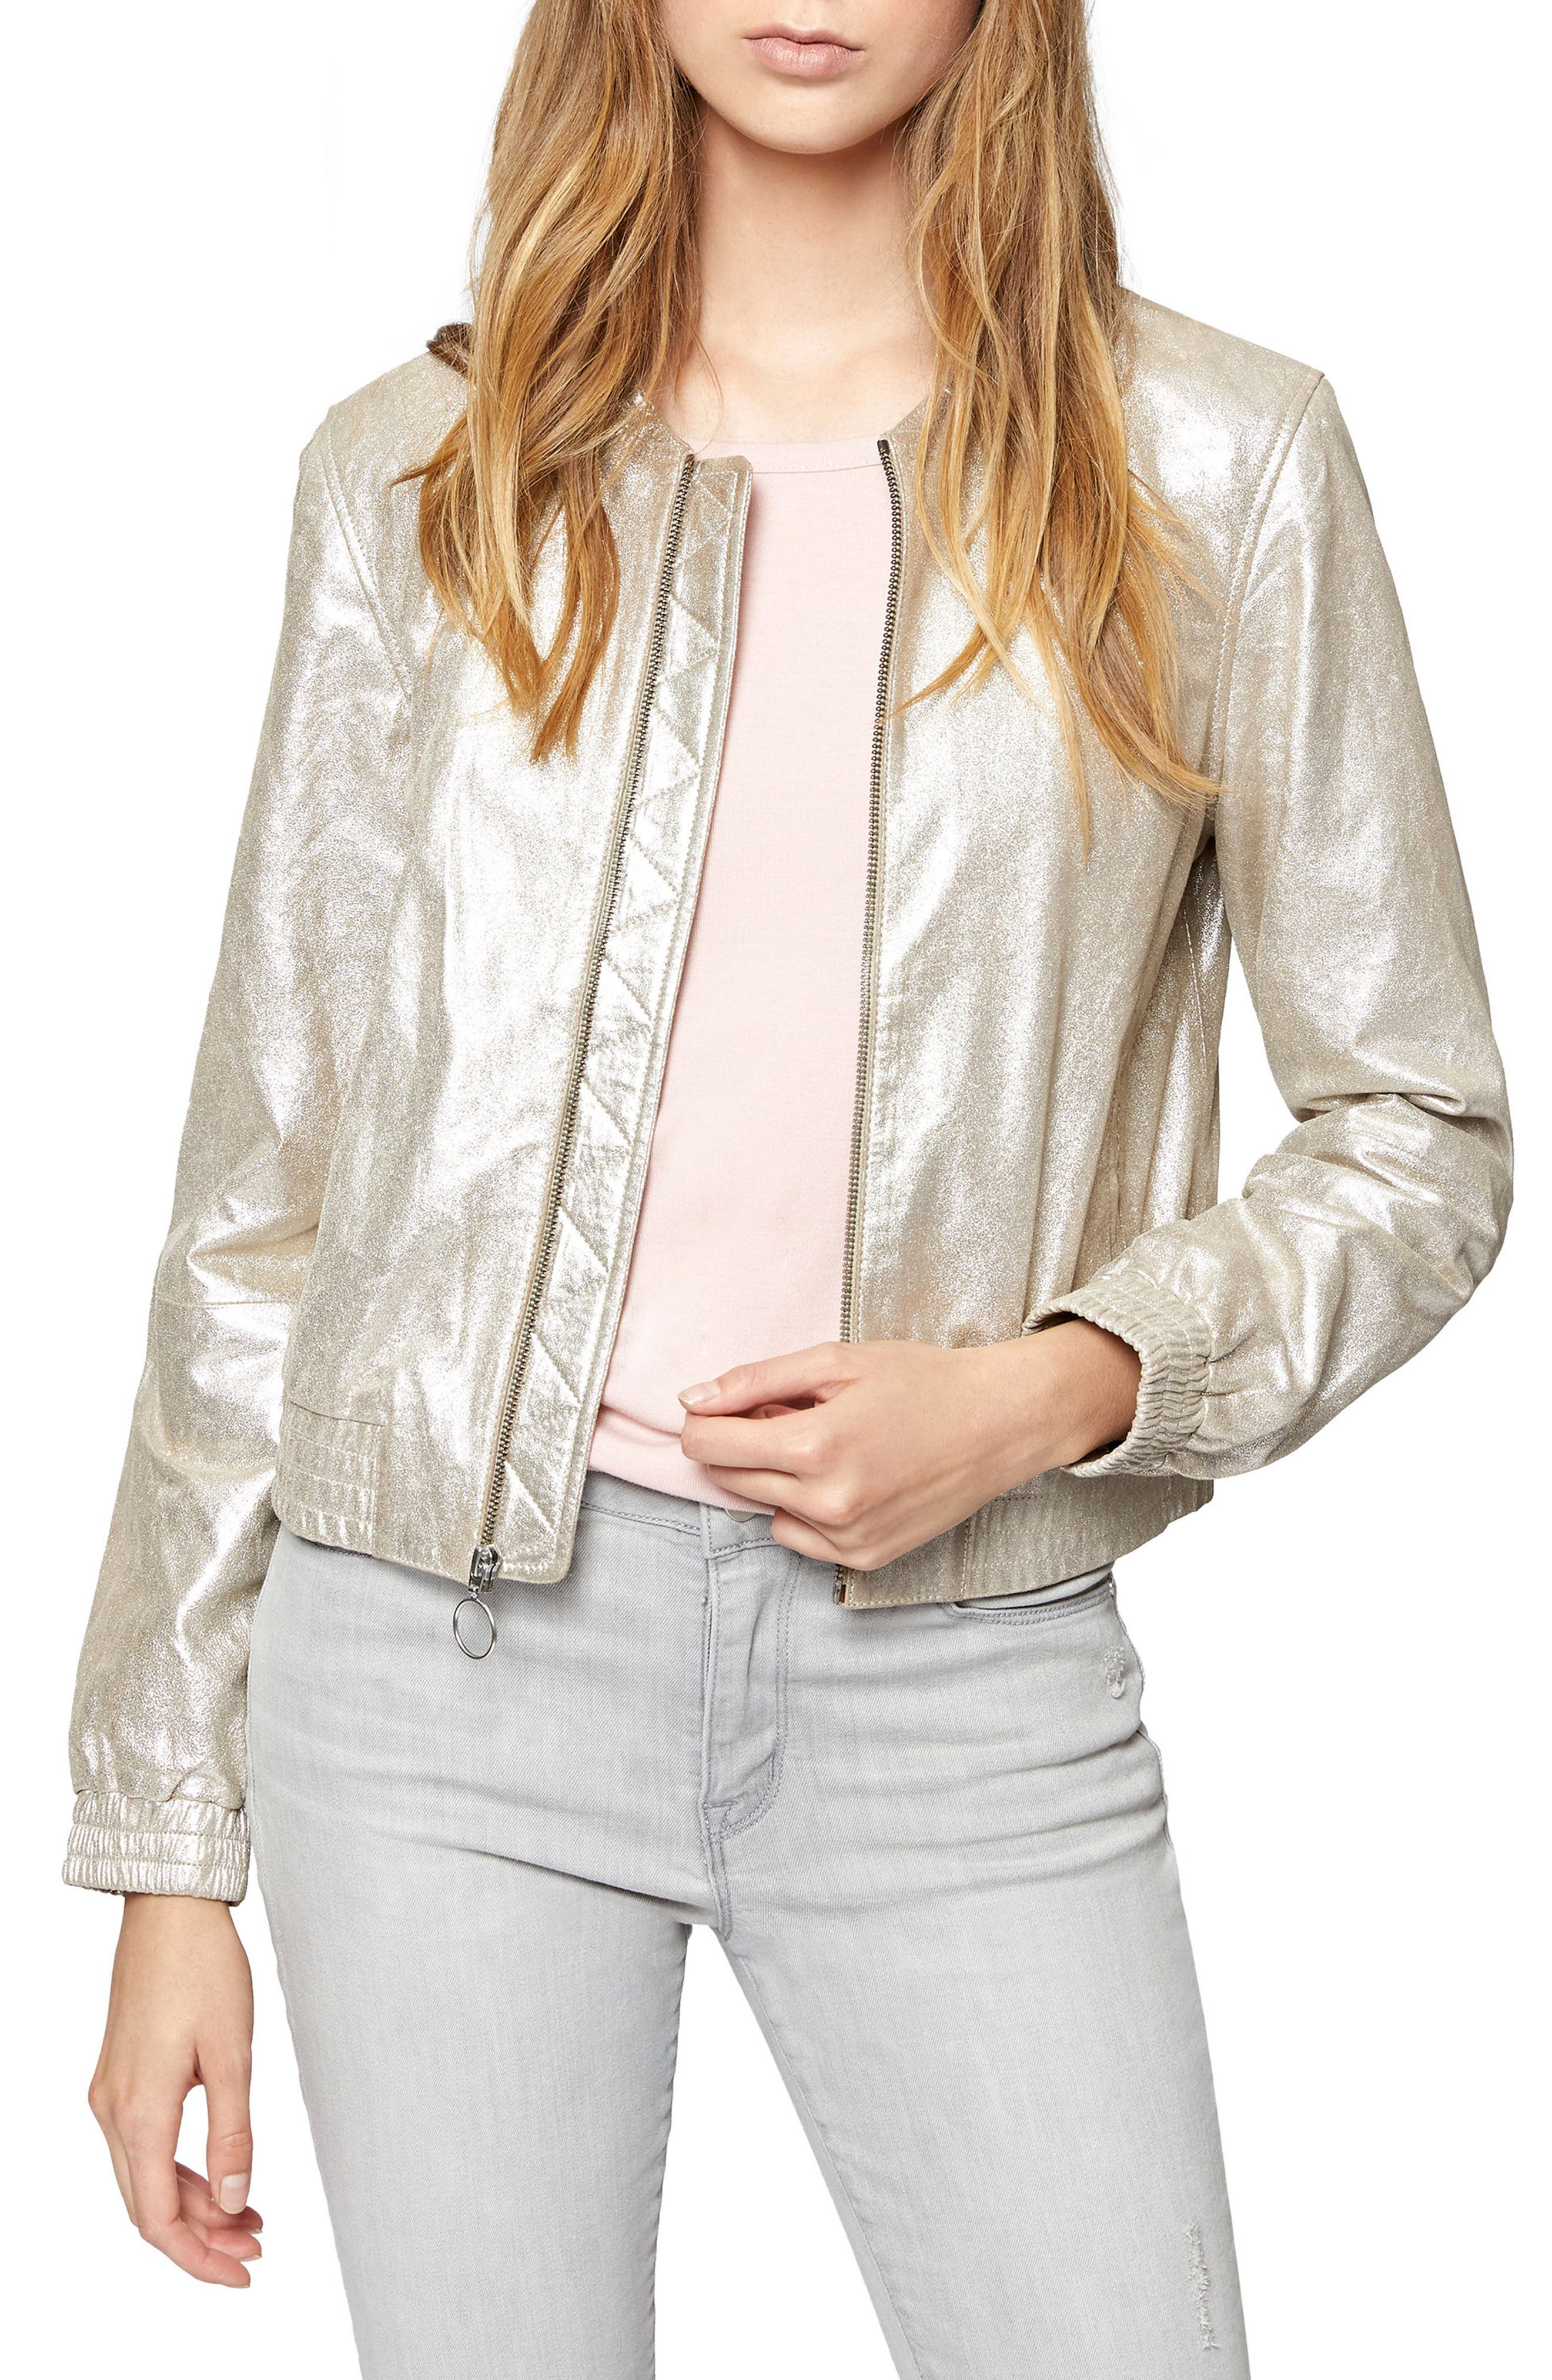 Cool Gang Metallic Leather Bomber Jacket,                         Main,                         color, 040